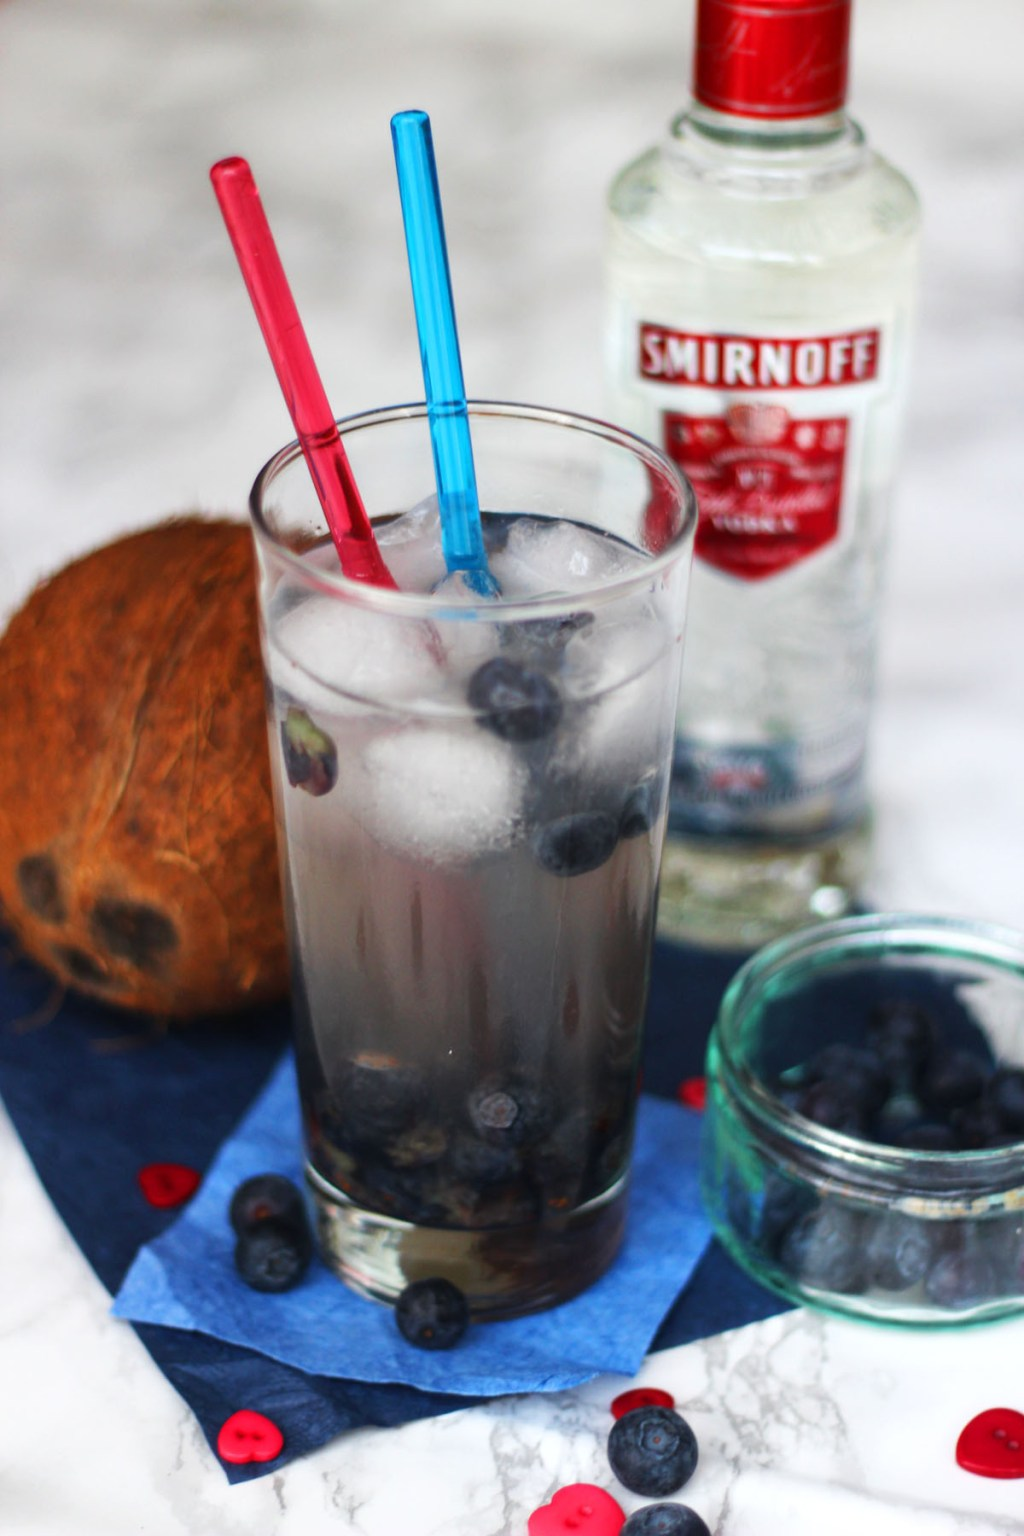 Shim-cocktails-are-the-next-big-thing-and-this-Tall-Coconut-Cocktail-comes-in-at-just-one-unit-find-the-recipe-at-Supper-in-the-Suburbs